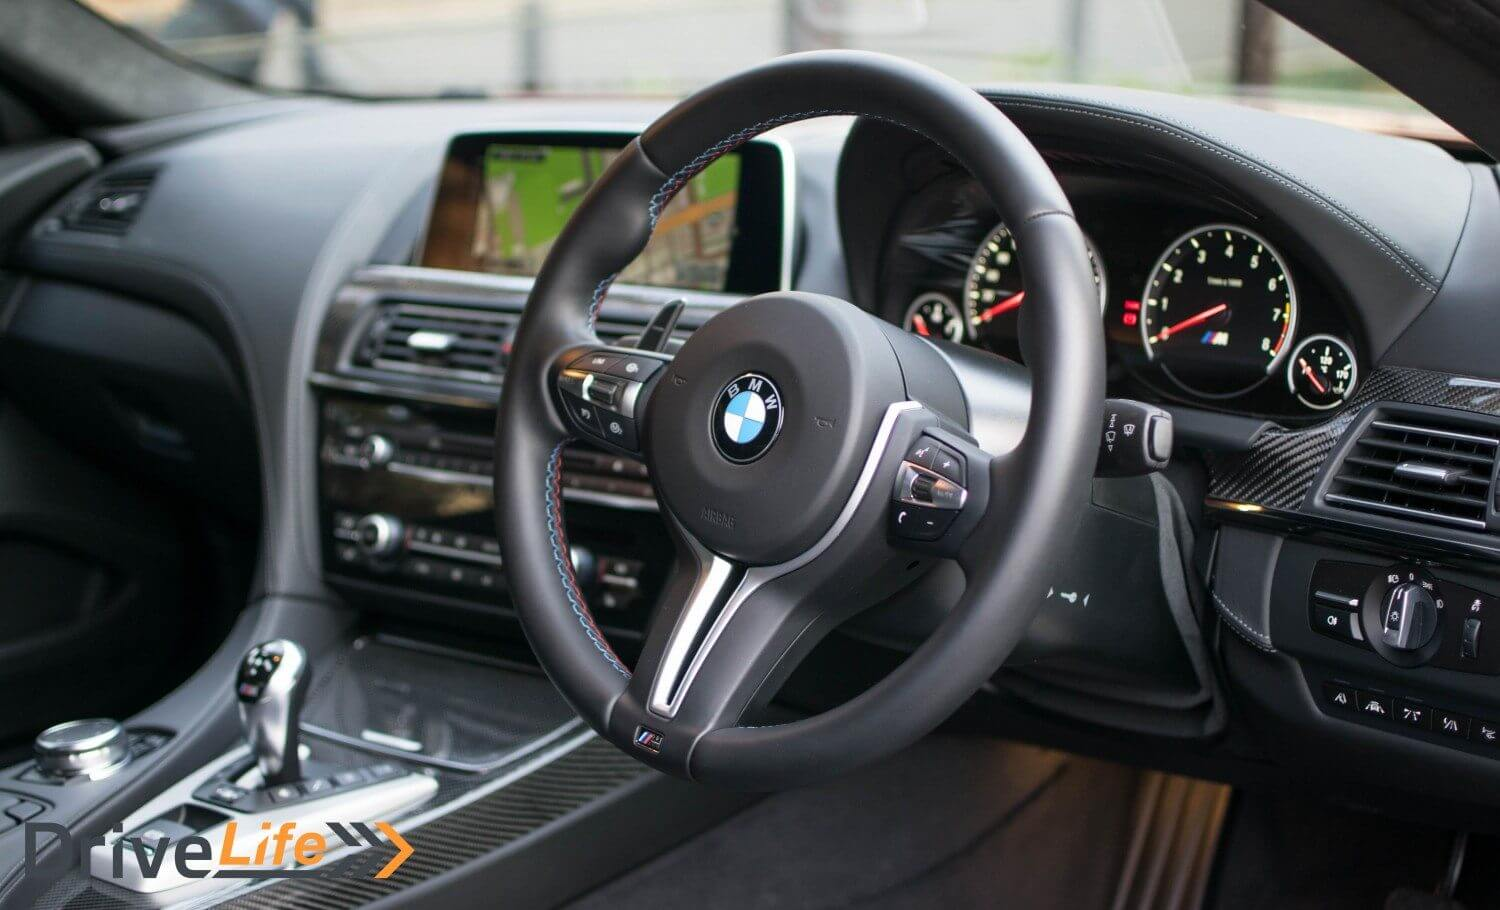 drive-life-nz-car-review-bmw-m6-competition-2016-interior-01